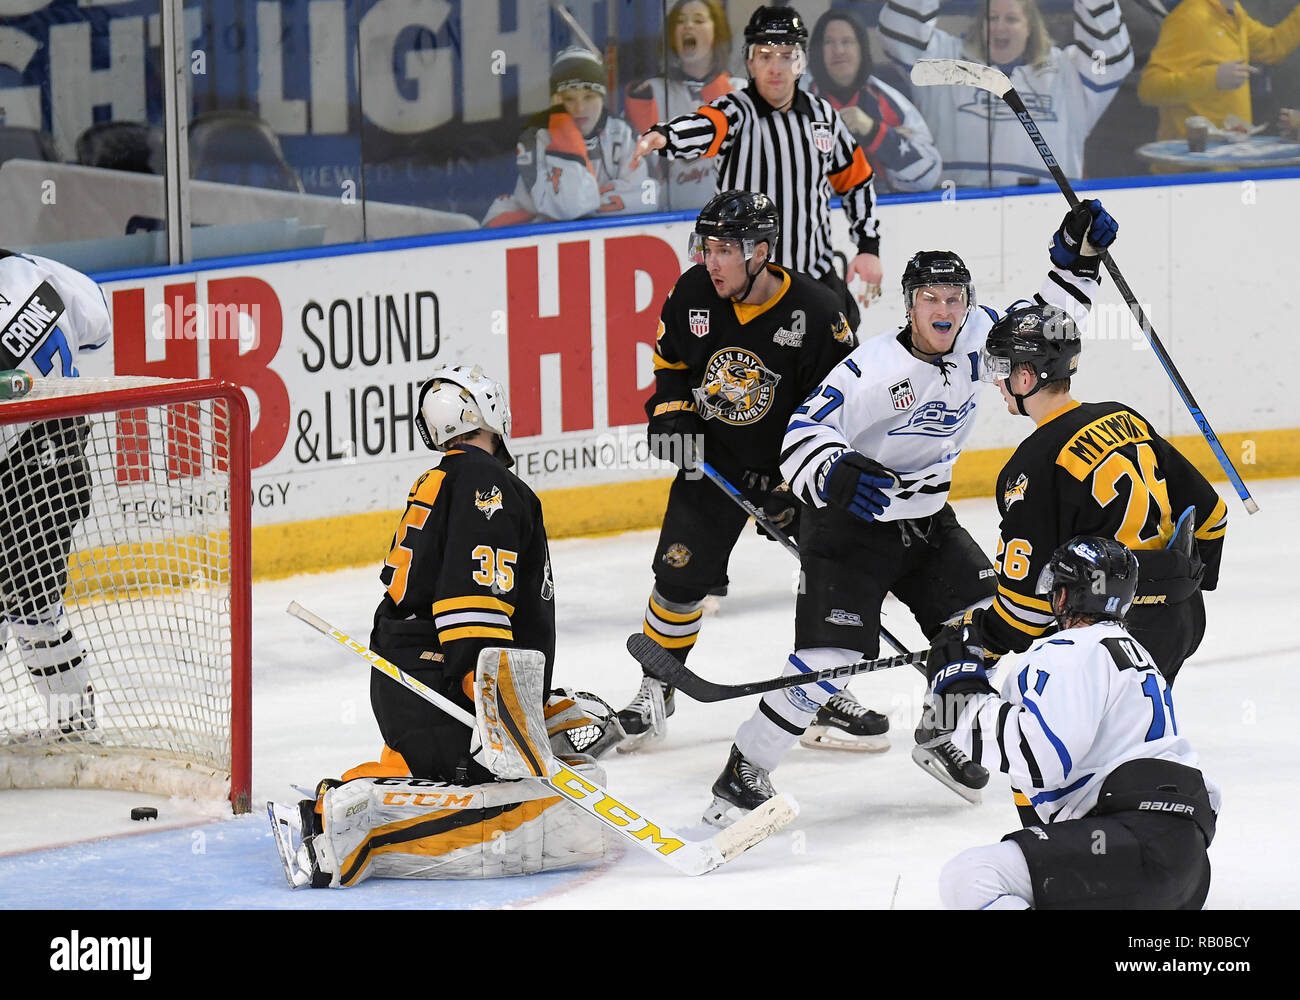 Fargo, ND, USA. 5th Jan, 2019. Fargo Force forward Ben Meyers (27) celebrates scoring a goal during a USHL game between the Green Bay Gamblers and the Fargo Force at Scheels Arena in Fargo, ND. Fargo defeated Green Bay 4-2. Photo by Russell Hons/CSM/Alamy Live News - Stock Image